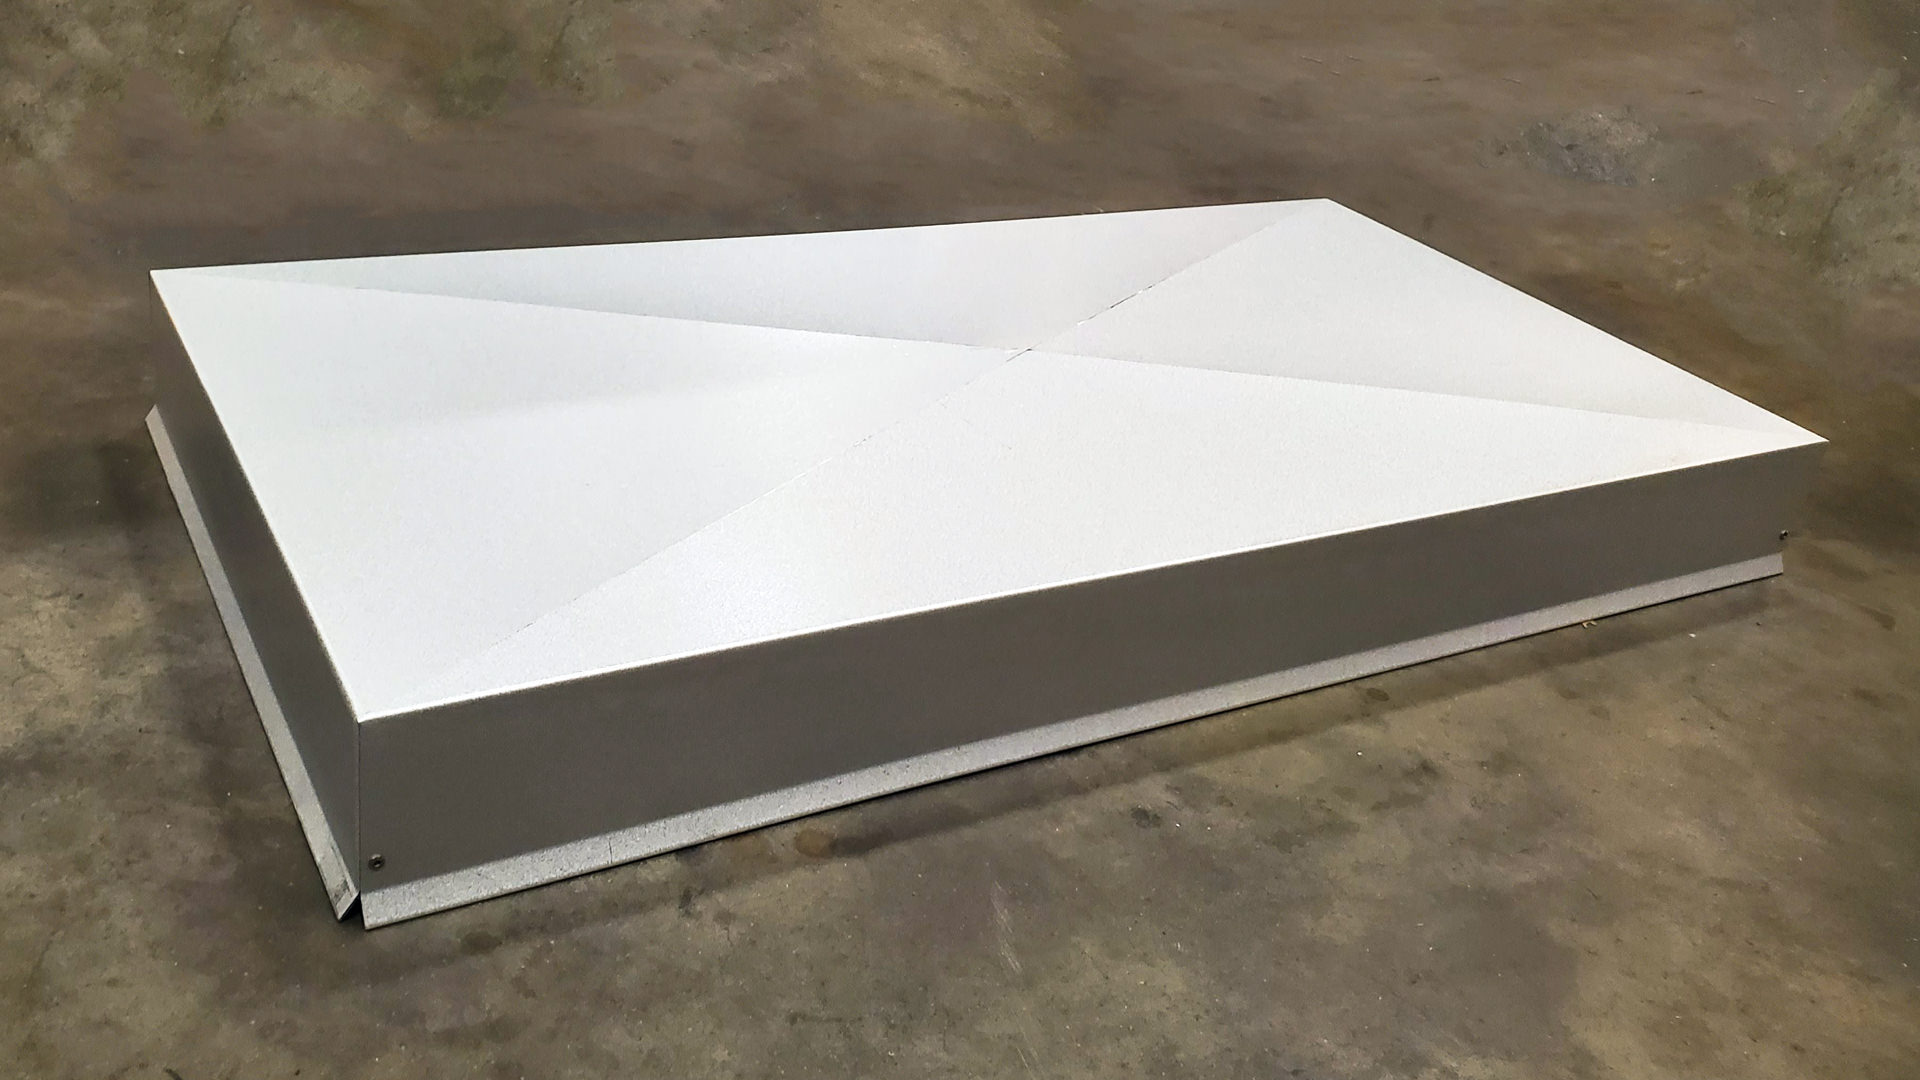 Galvalume chimney pad cover - non functional